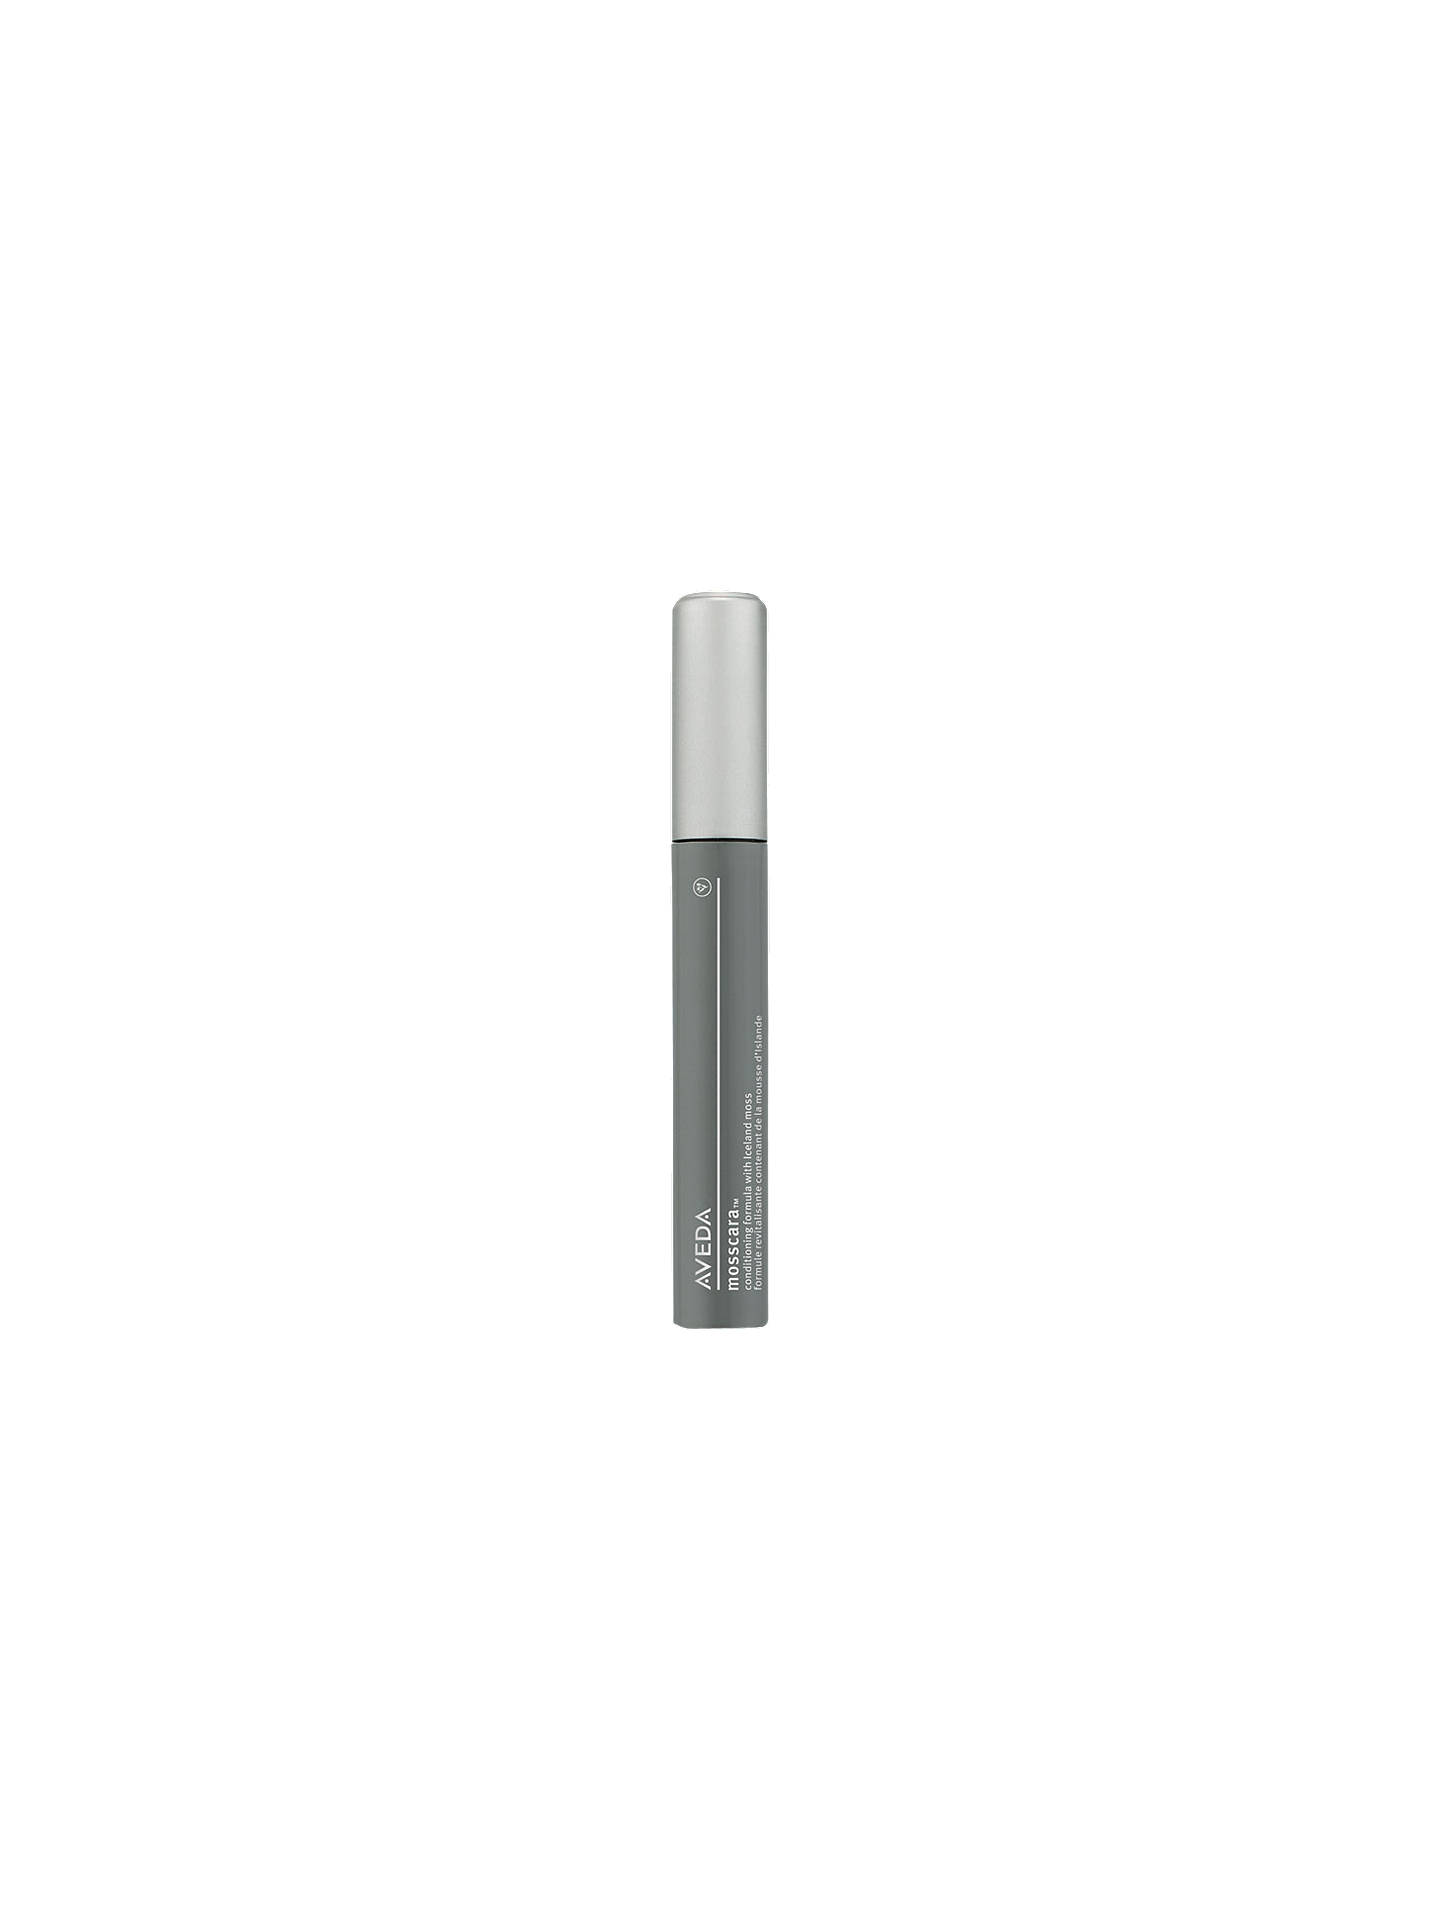 BuyAVEDA Mosscara Mascara, 901 Black Forest Online at johnlewis.com